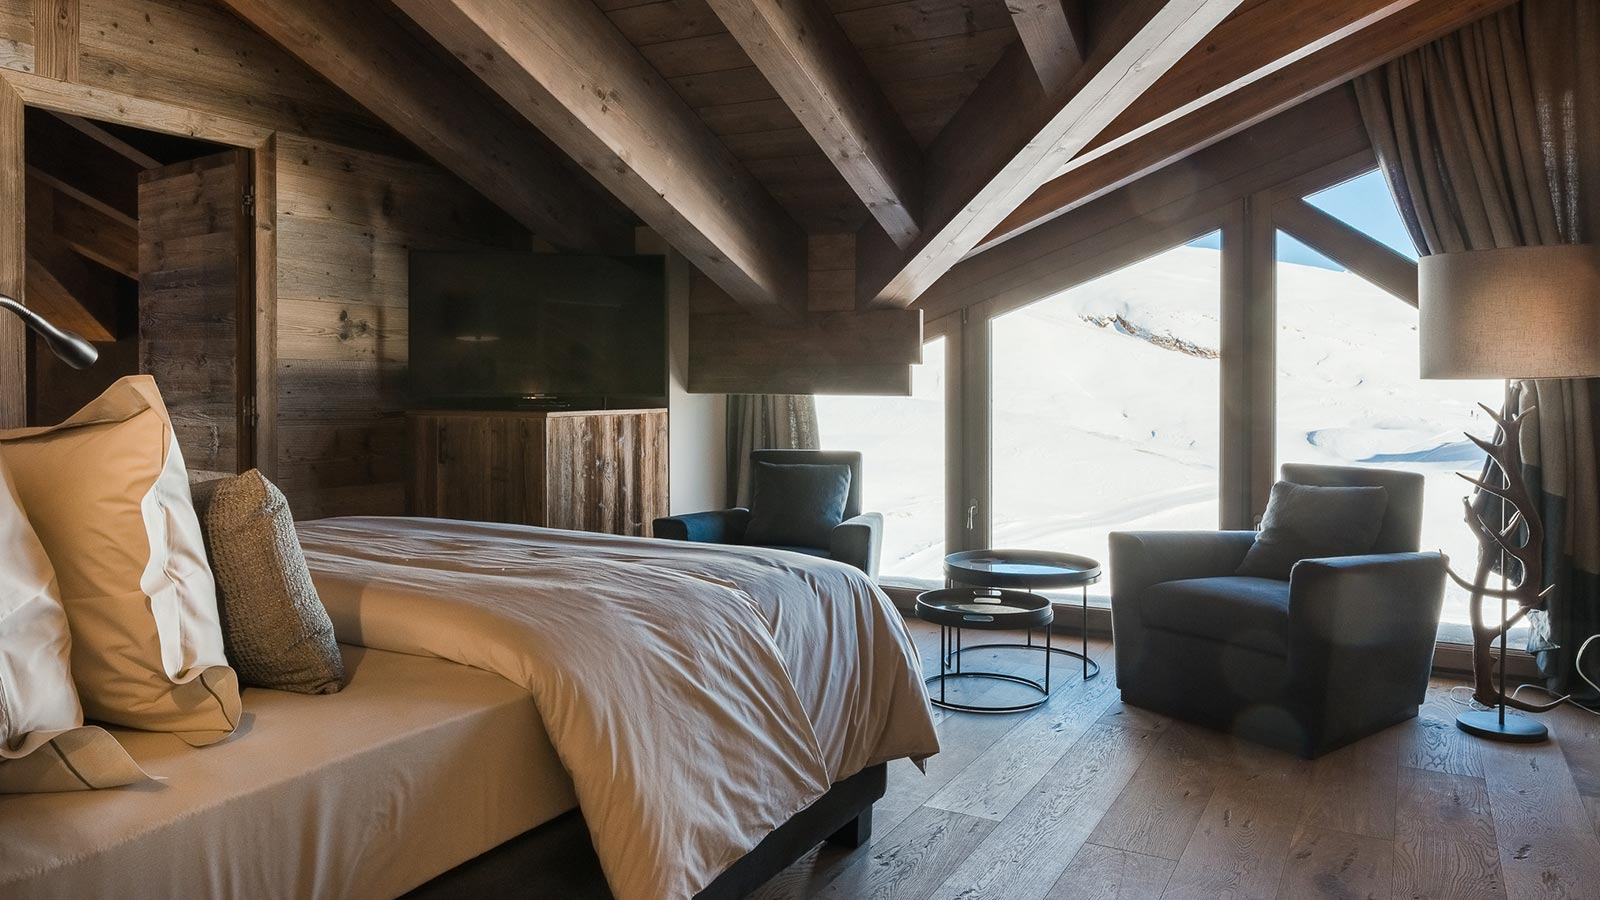 Interior of a suite in the mountain lodge